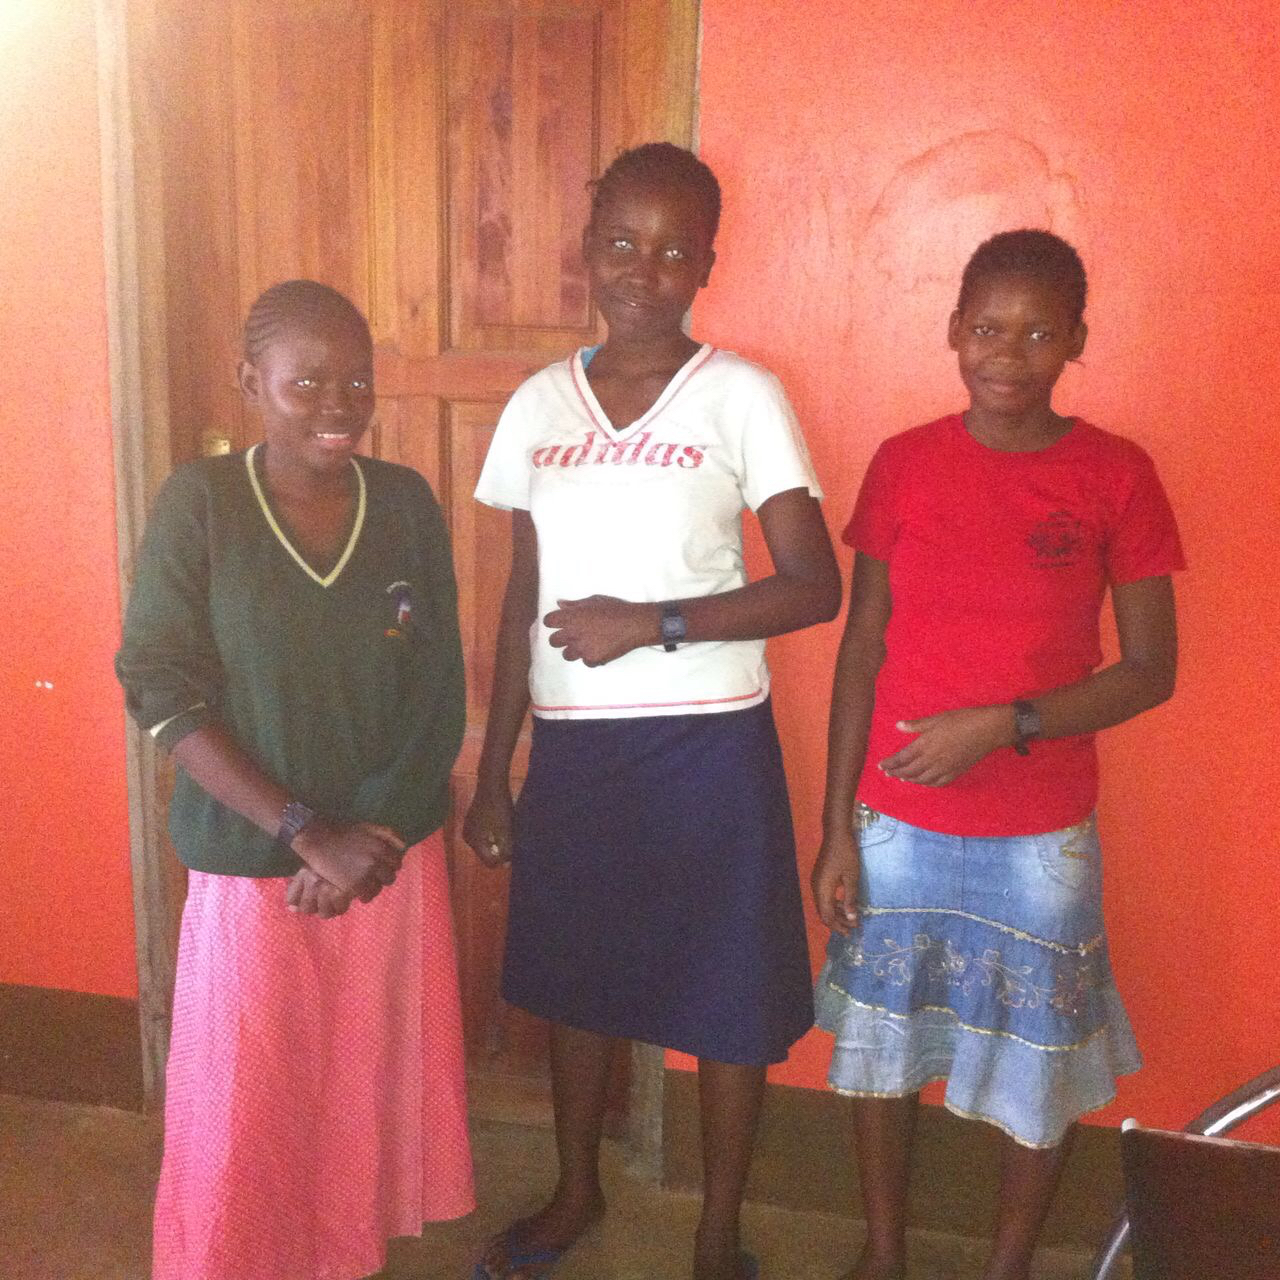 The girls with their new watches - Left to right - Tamira, Linet, Peris.